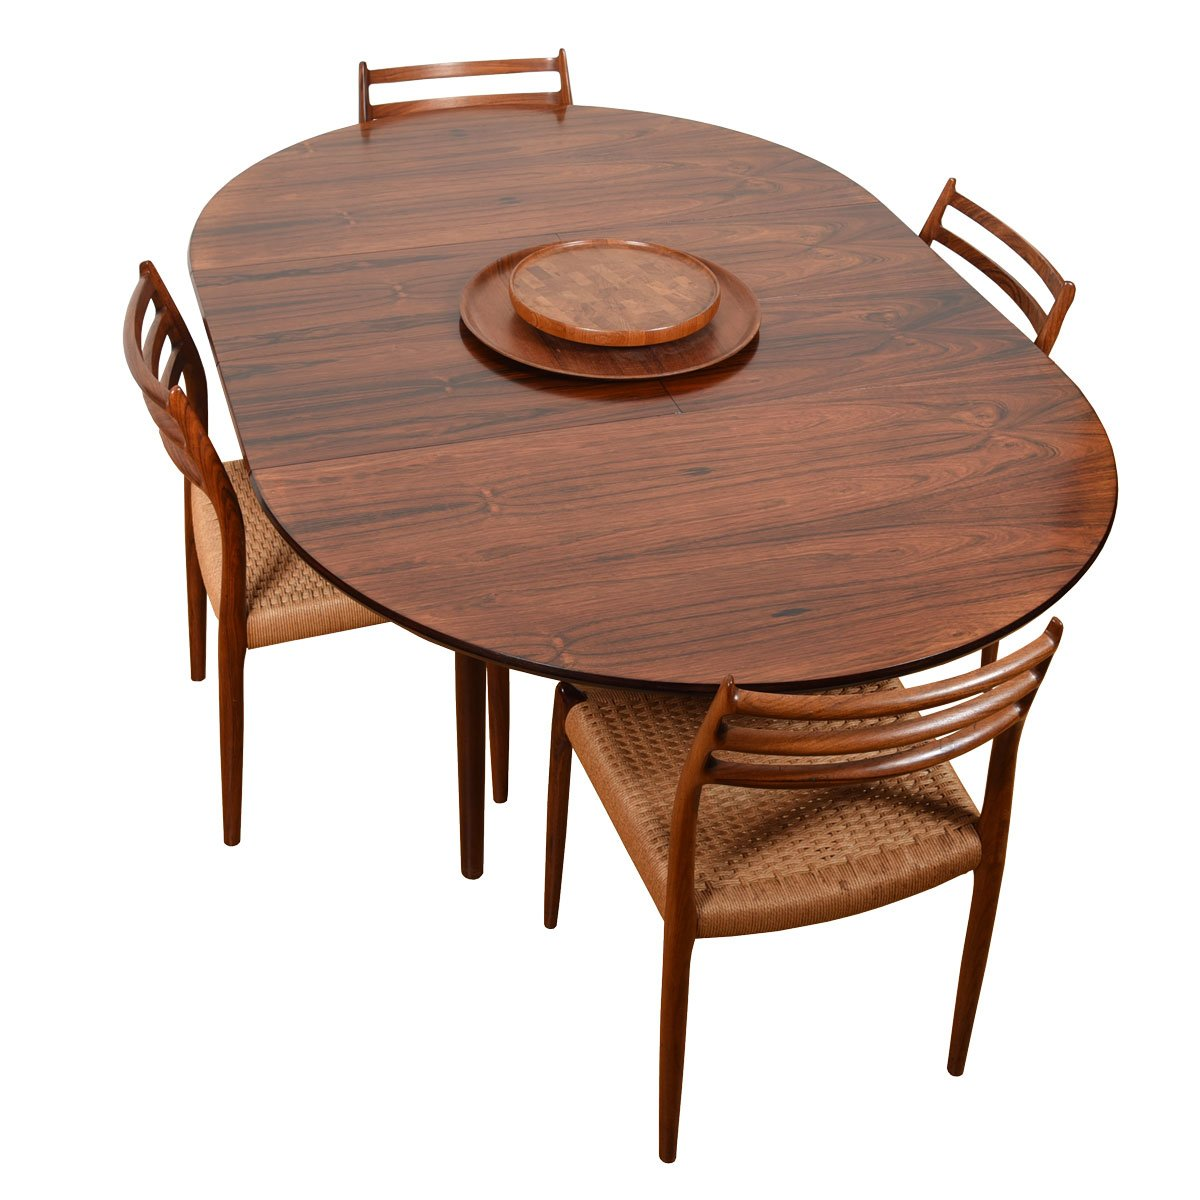 Ib Kofod-Larsen for Christensen & Larsen Rosewood 47″ Round-to-Oval Dining Table w/ Butterfly Leaves.